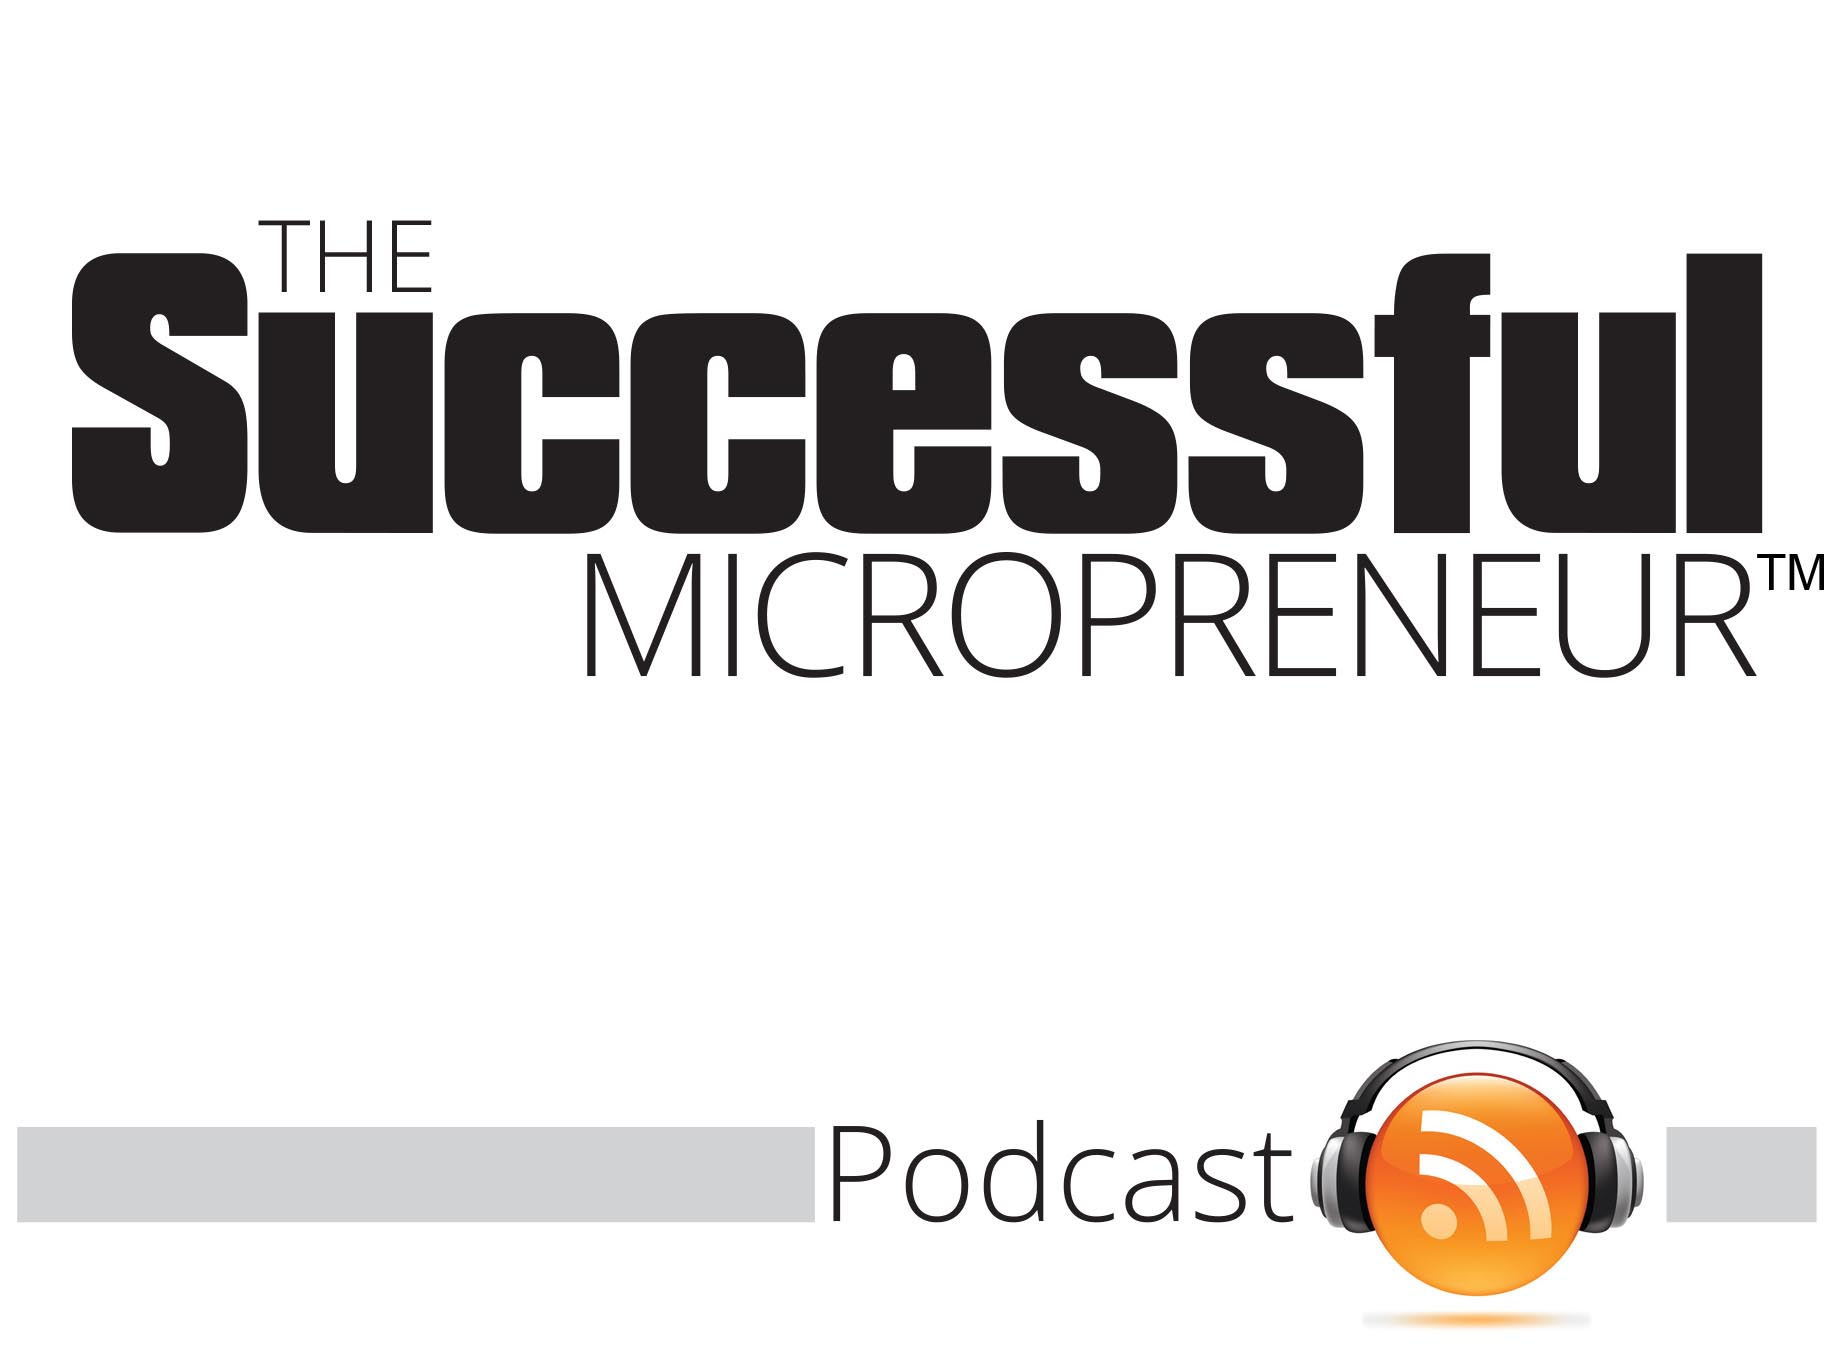 The Successful Micropreneur Podcast